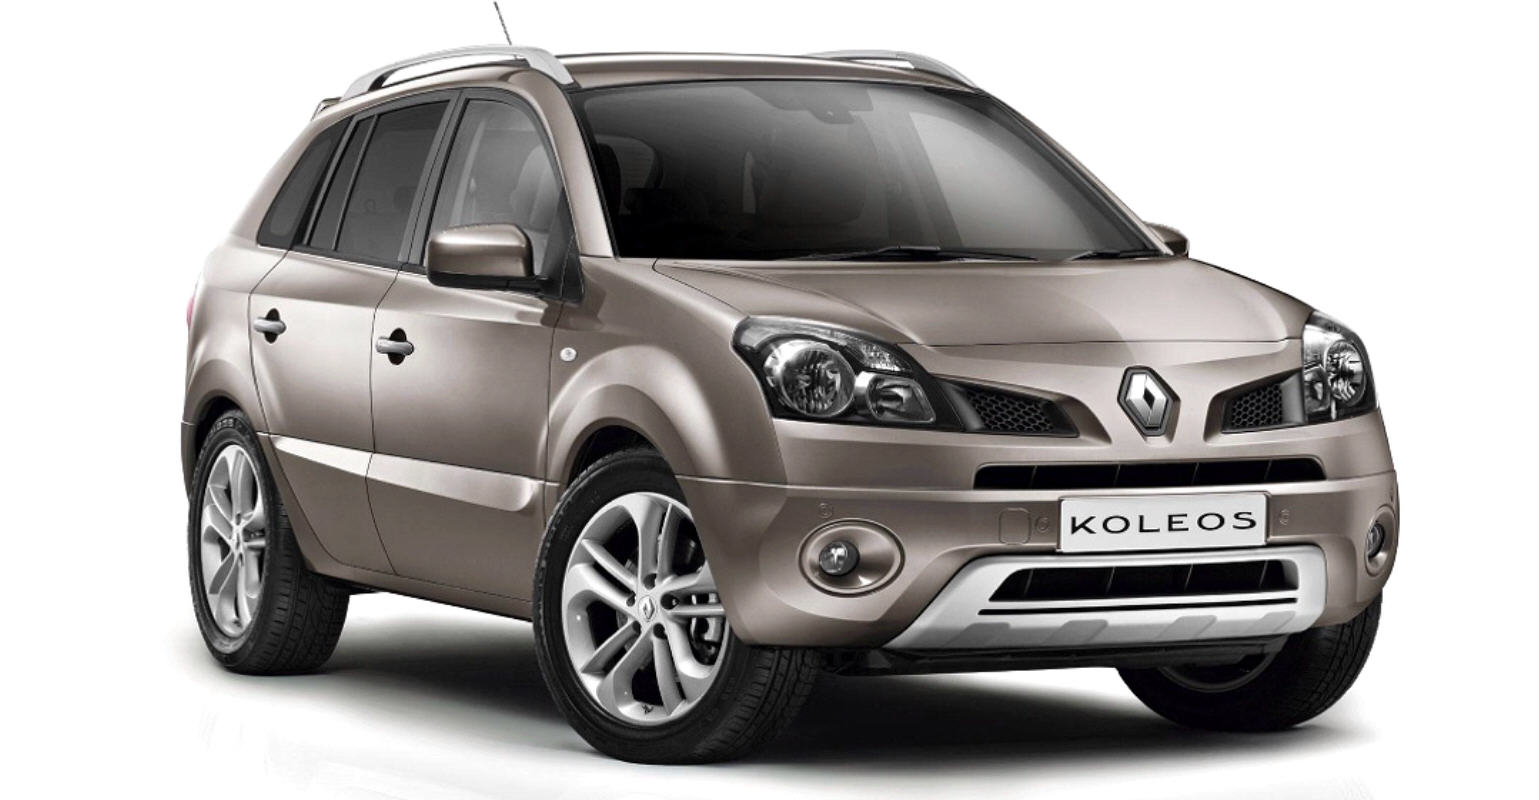 RENAULT KOLEOS MODEL YEAR 2010